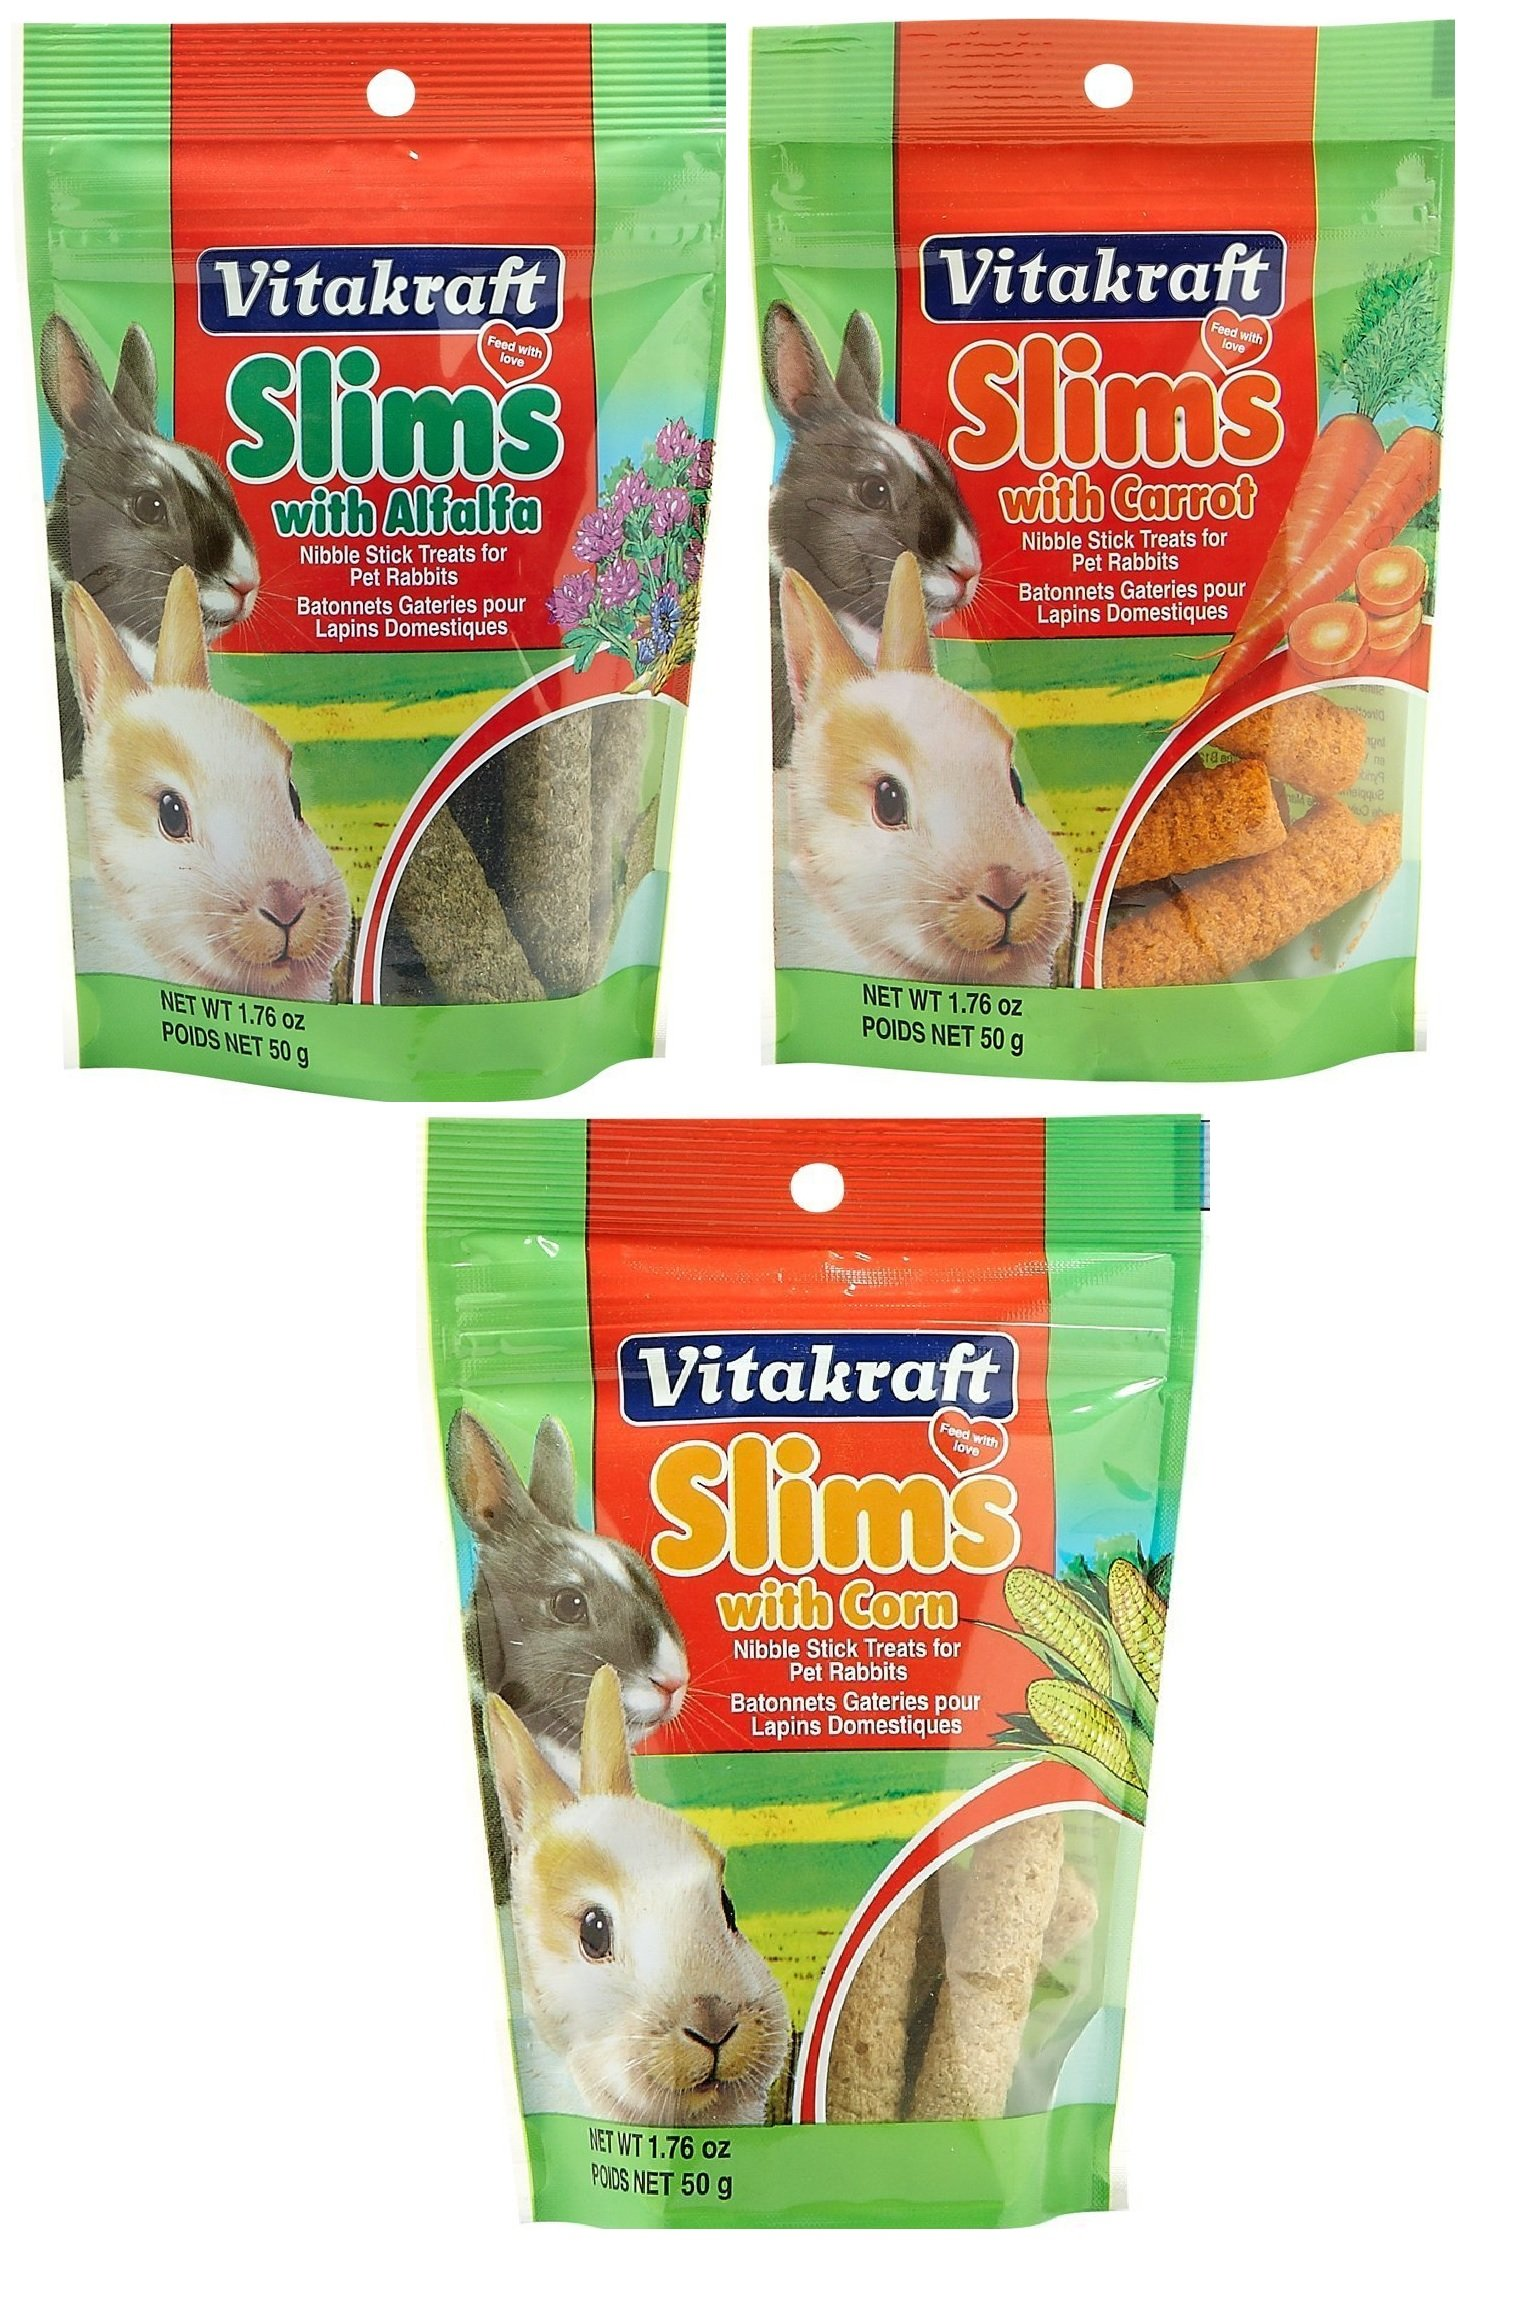 Vitakraft Pet Rabbit Slims Nibble Stick Treat Variety by Vitakraft